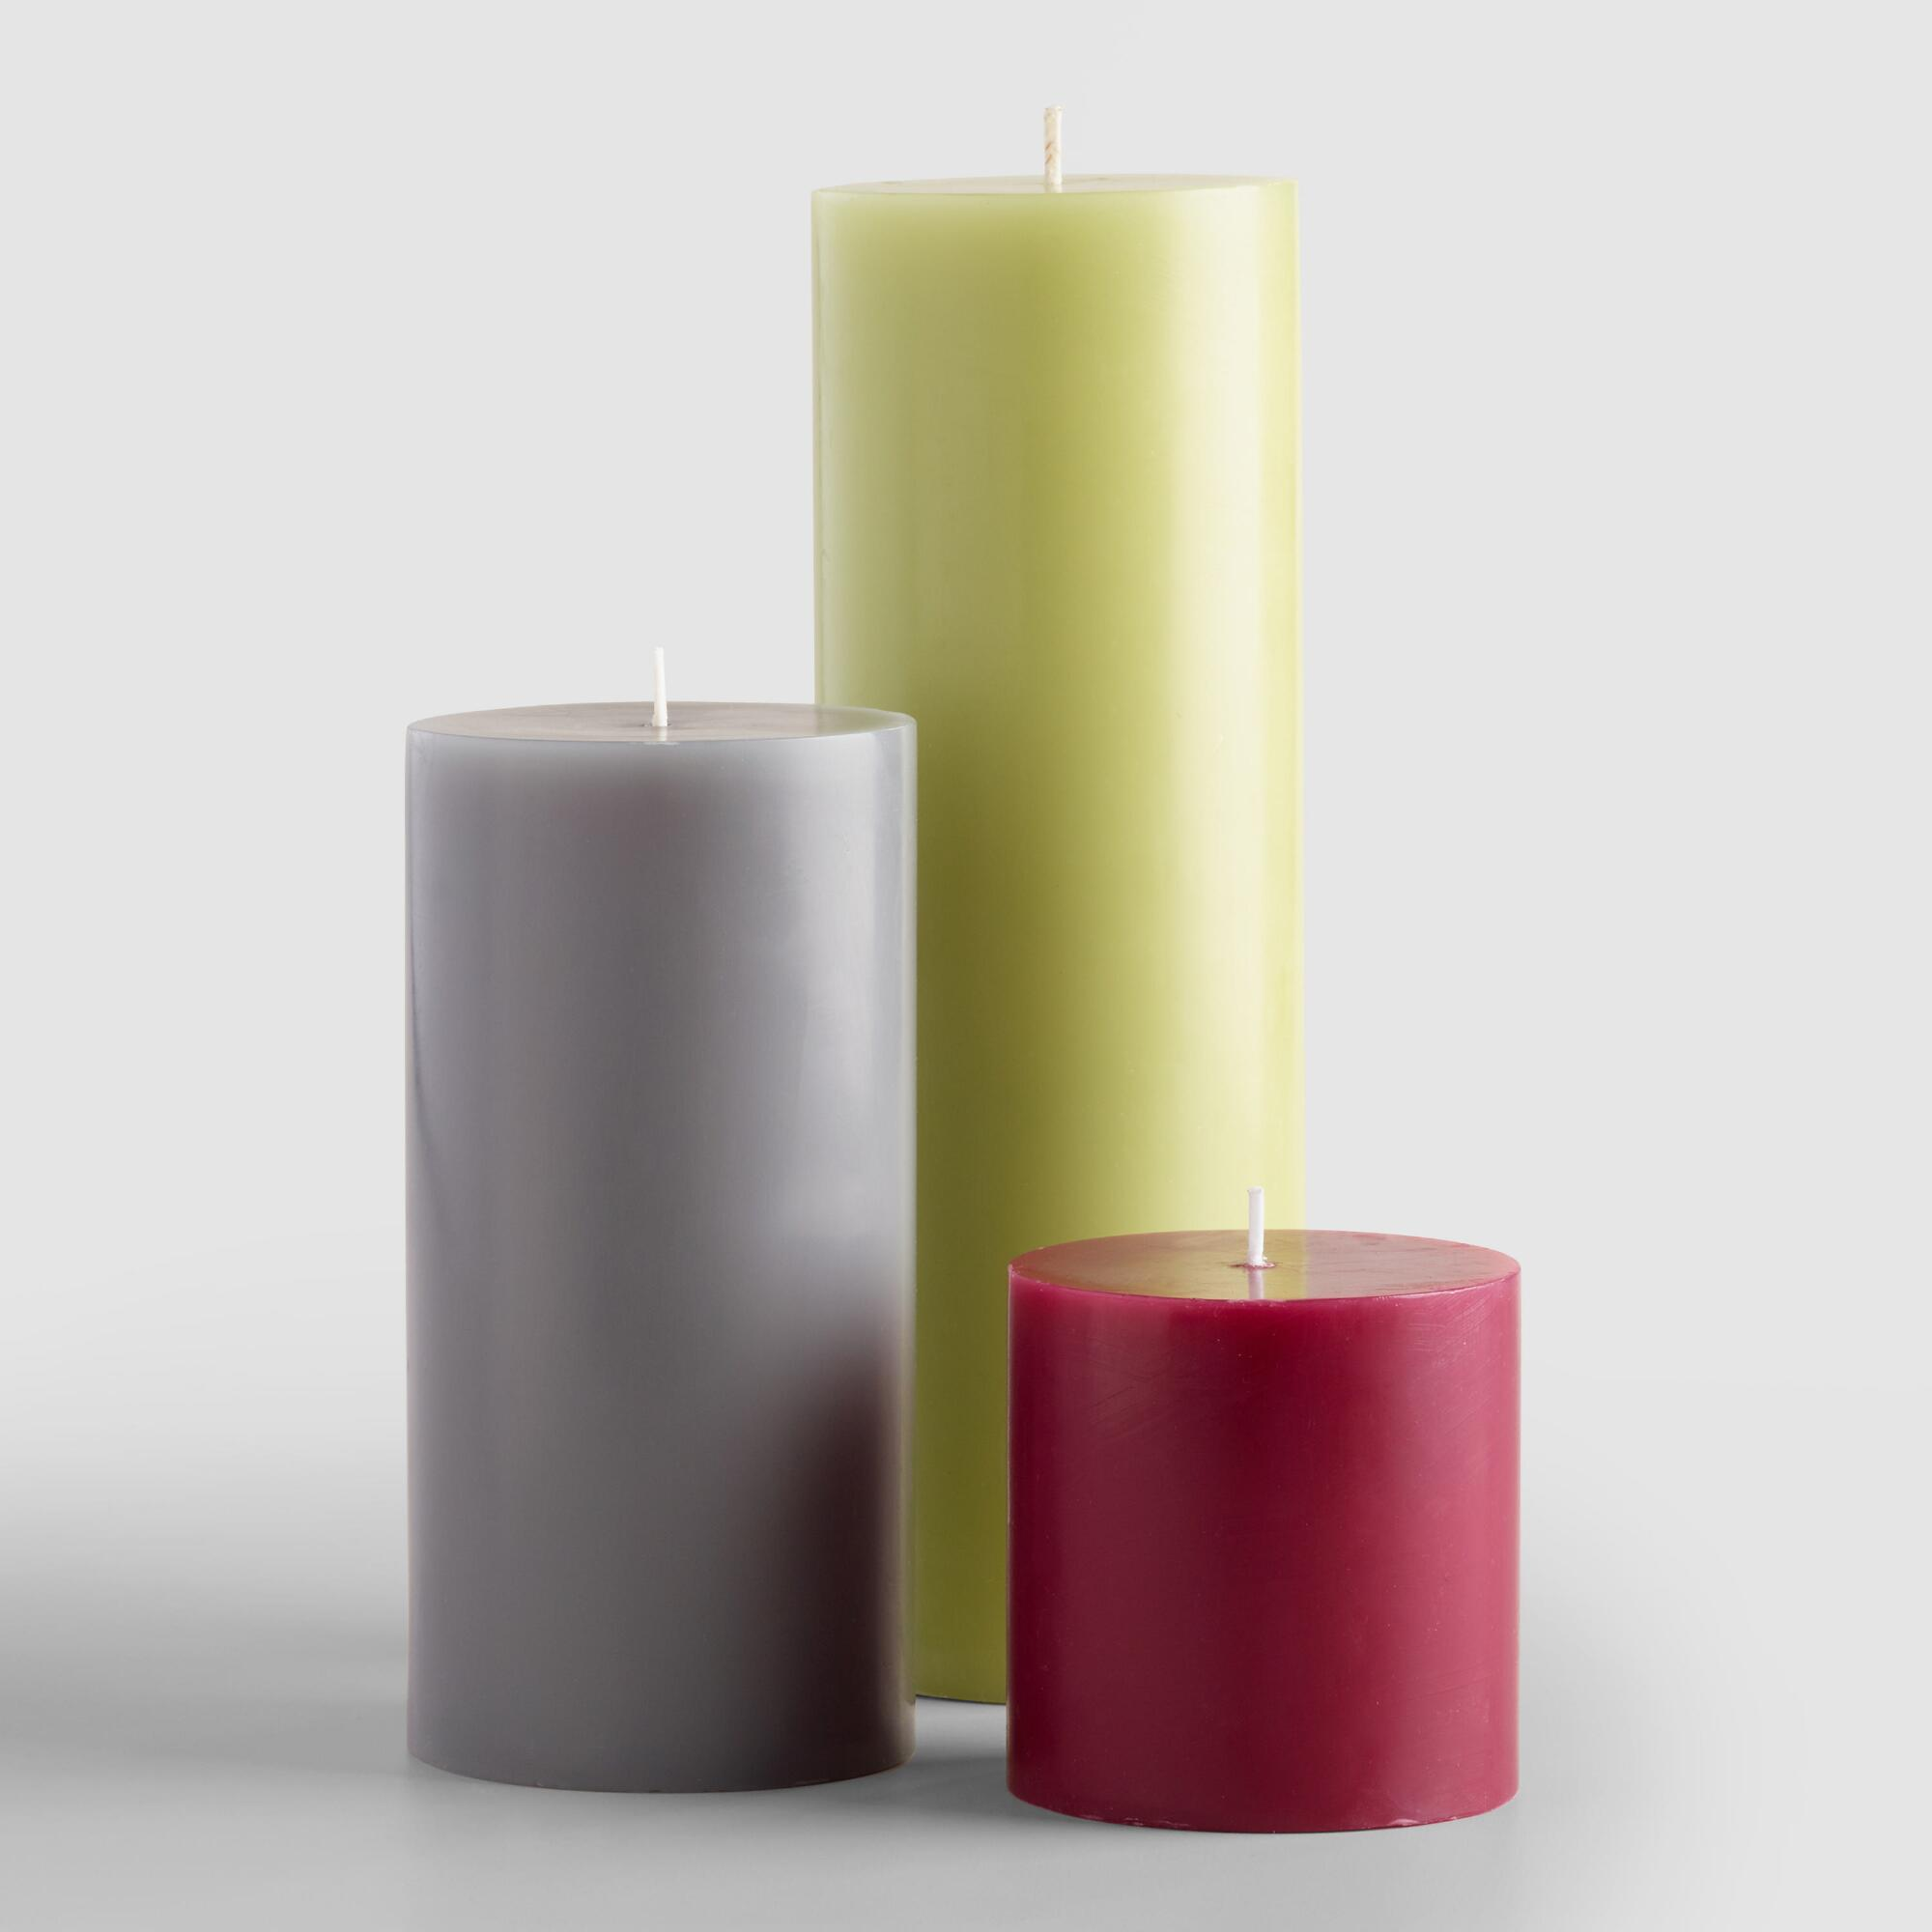 The crimson Hamilton candle is a seventeen wick, unscented decorative Luxury Artisan Candles · Unique & Classic · High Quality & Handmade · Free Shipping AvailableTypes: Outdoor, Citronella, Indoor.